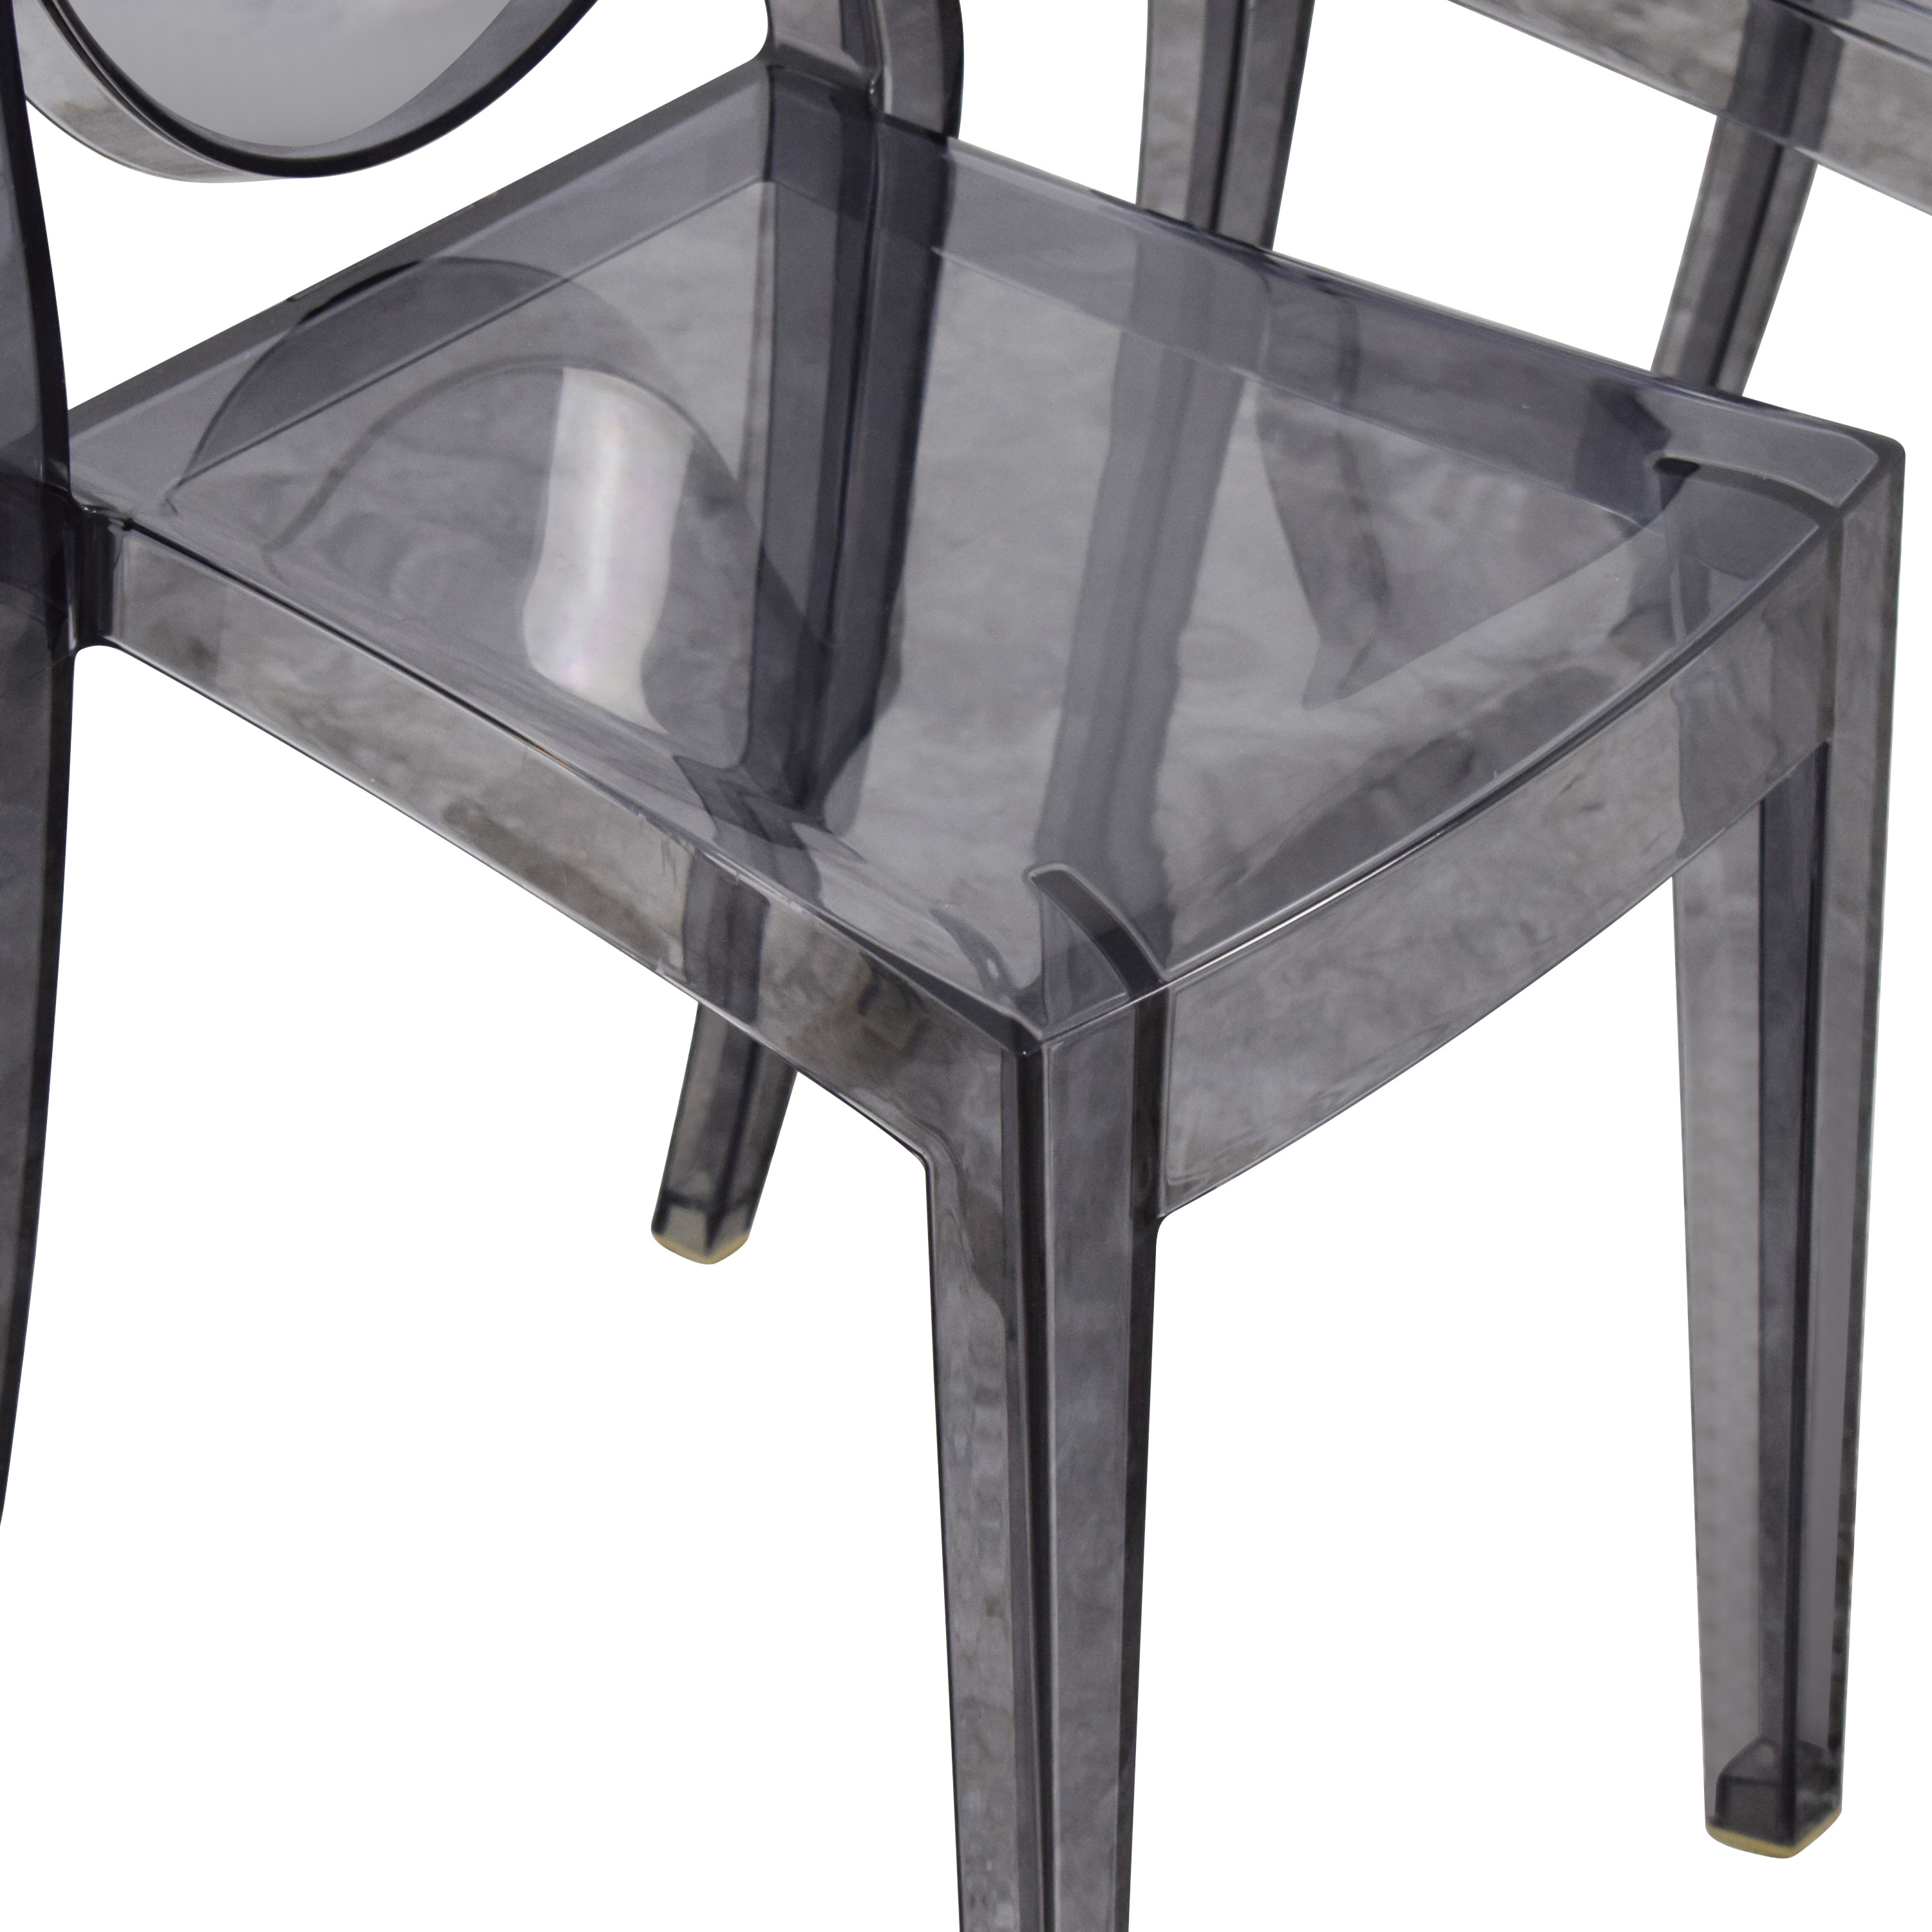 Kartell Design Within Reach Kartell Victoria Ghost Chairs on sale